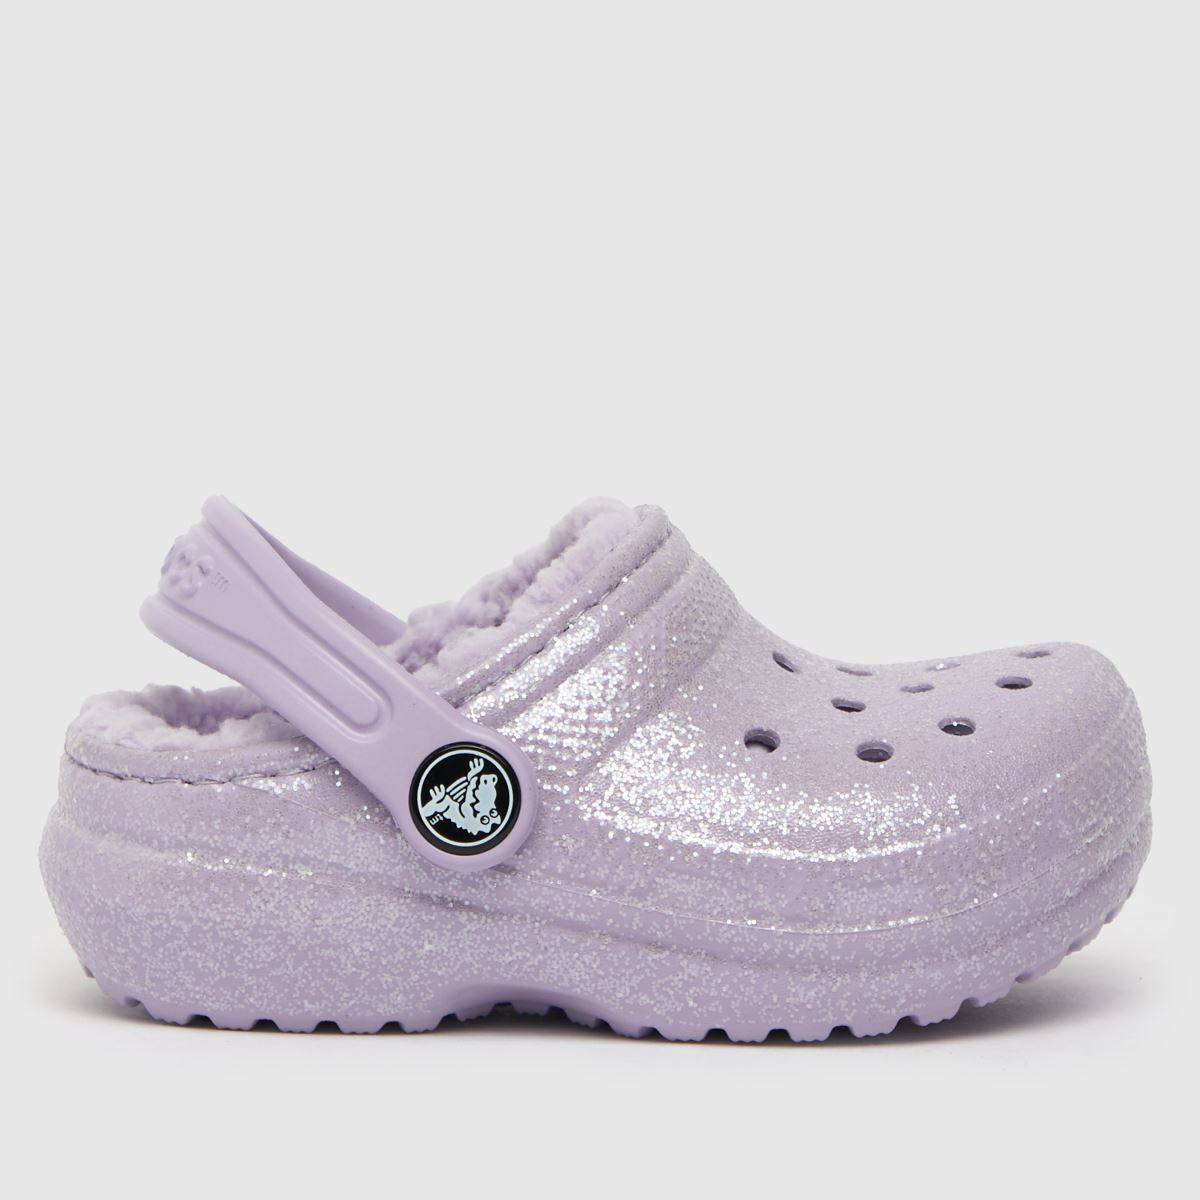 Crocs Lilac Classic Lined Glitter Sandals Toddler